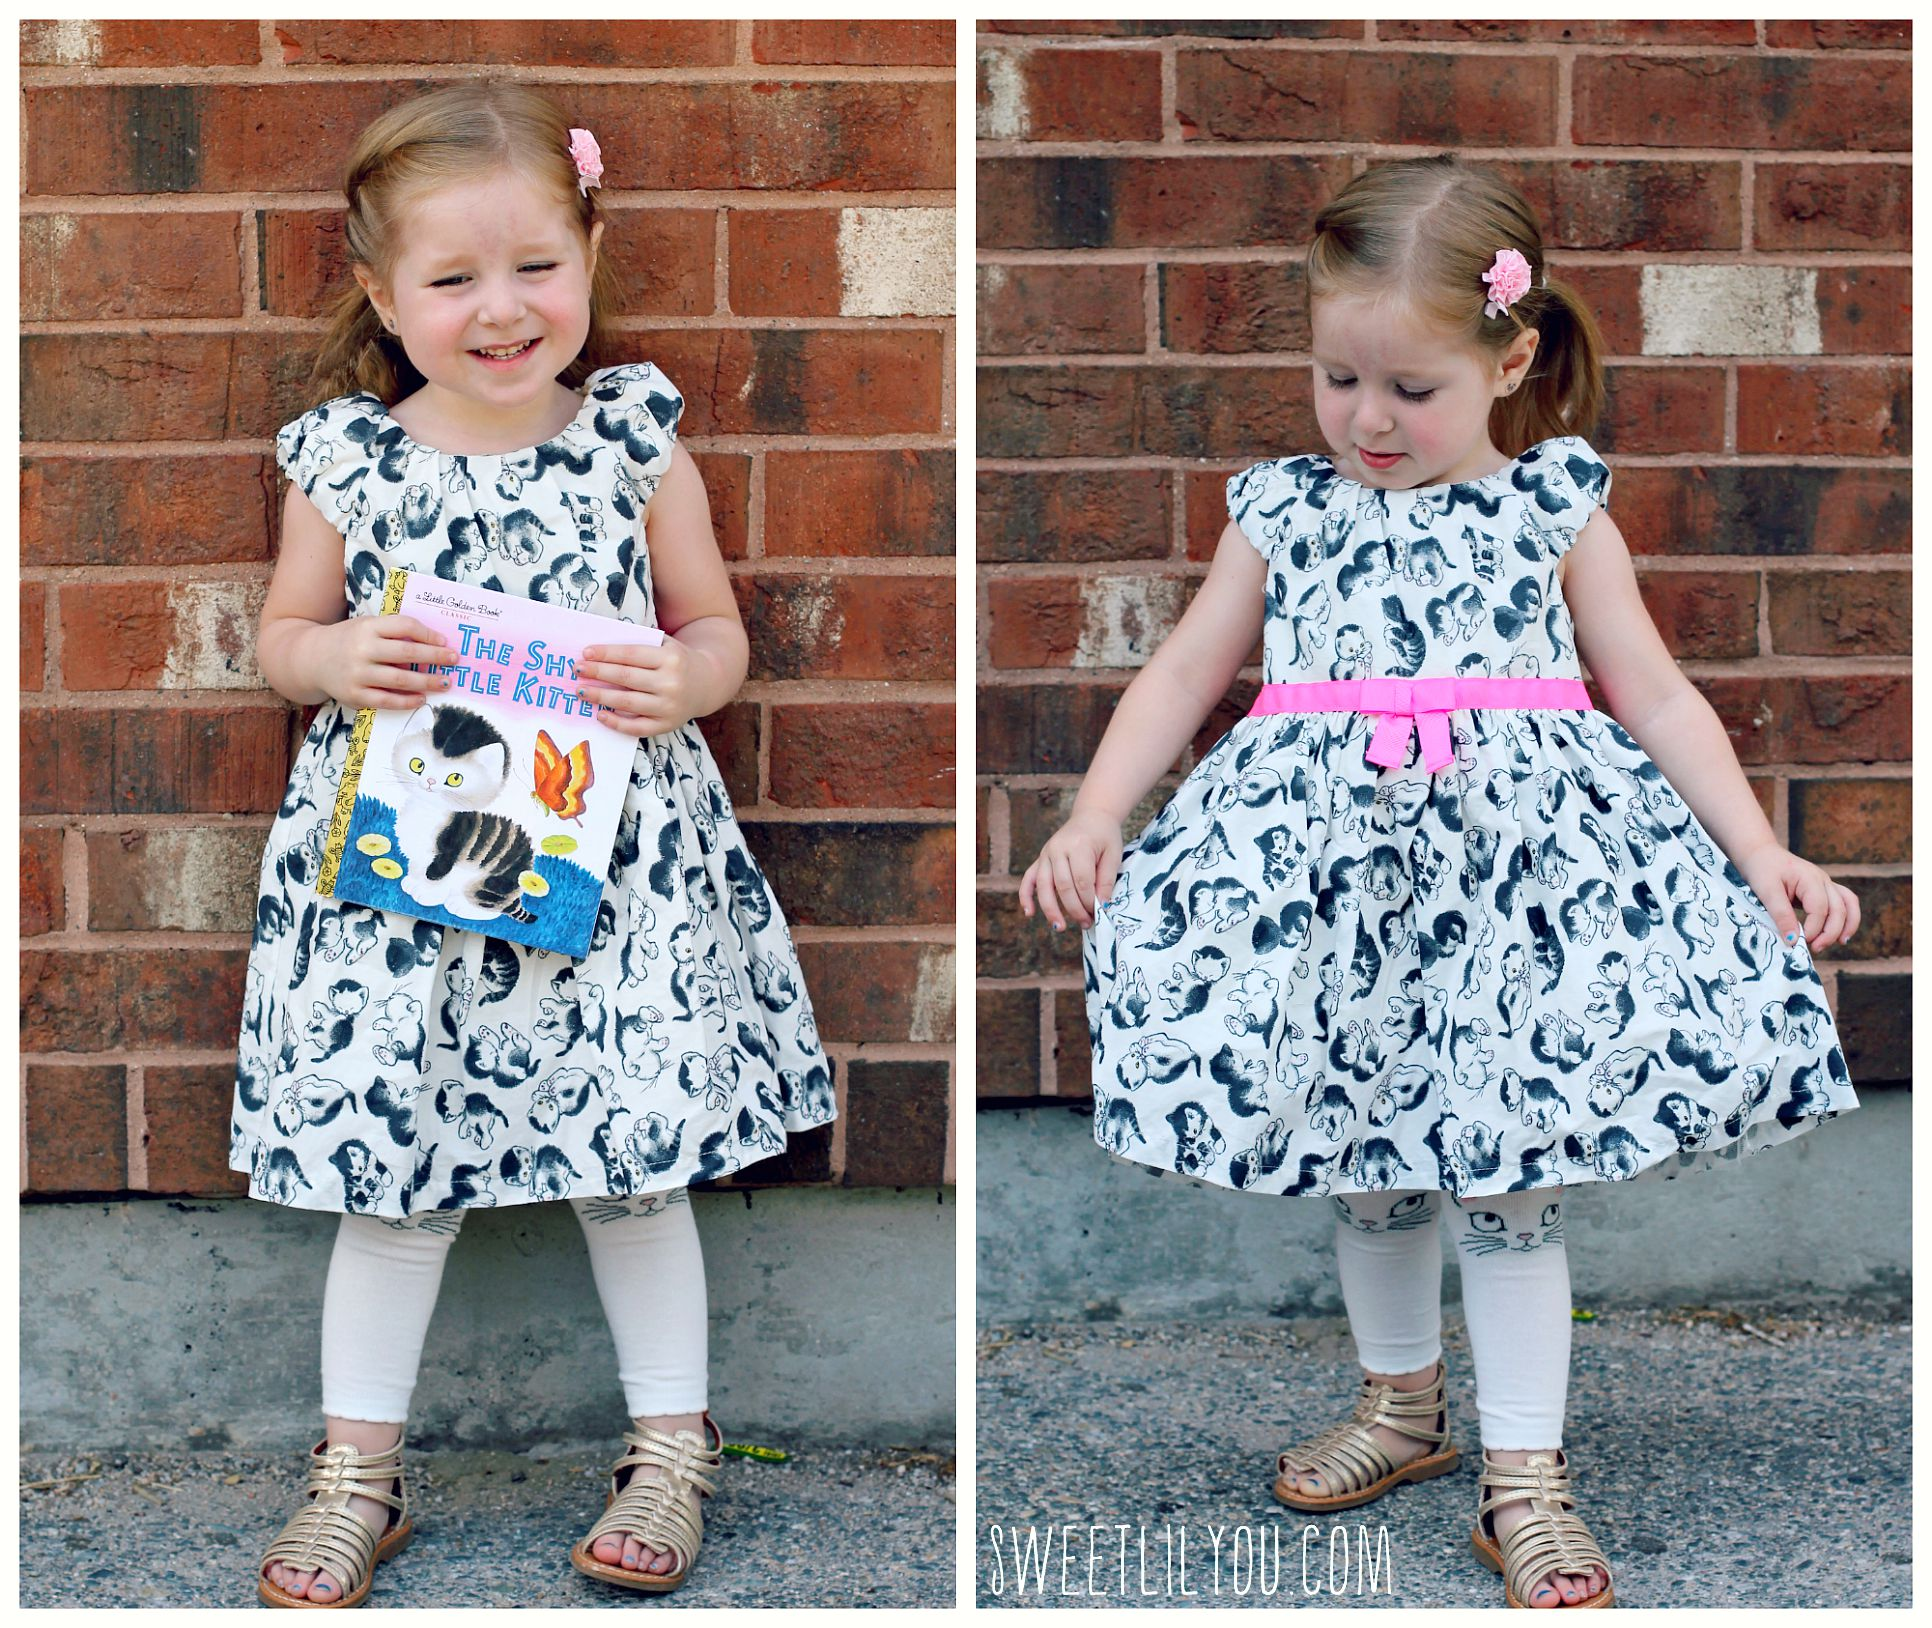 6c2a49cb1 ... Target The Shy Little Kitten at the playground · Cat dress for toddlers  ...